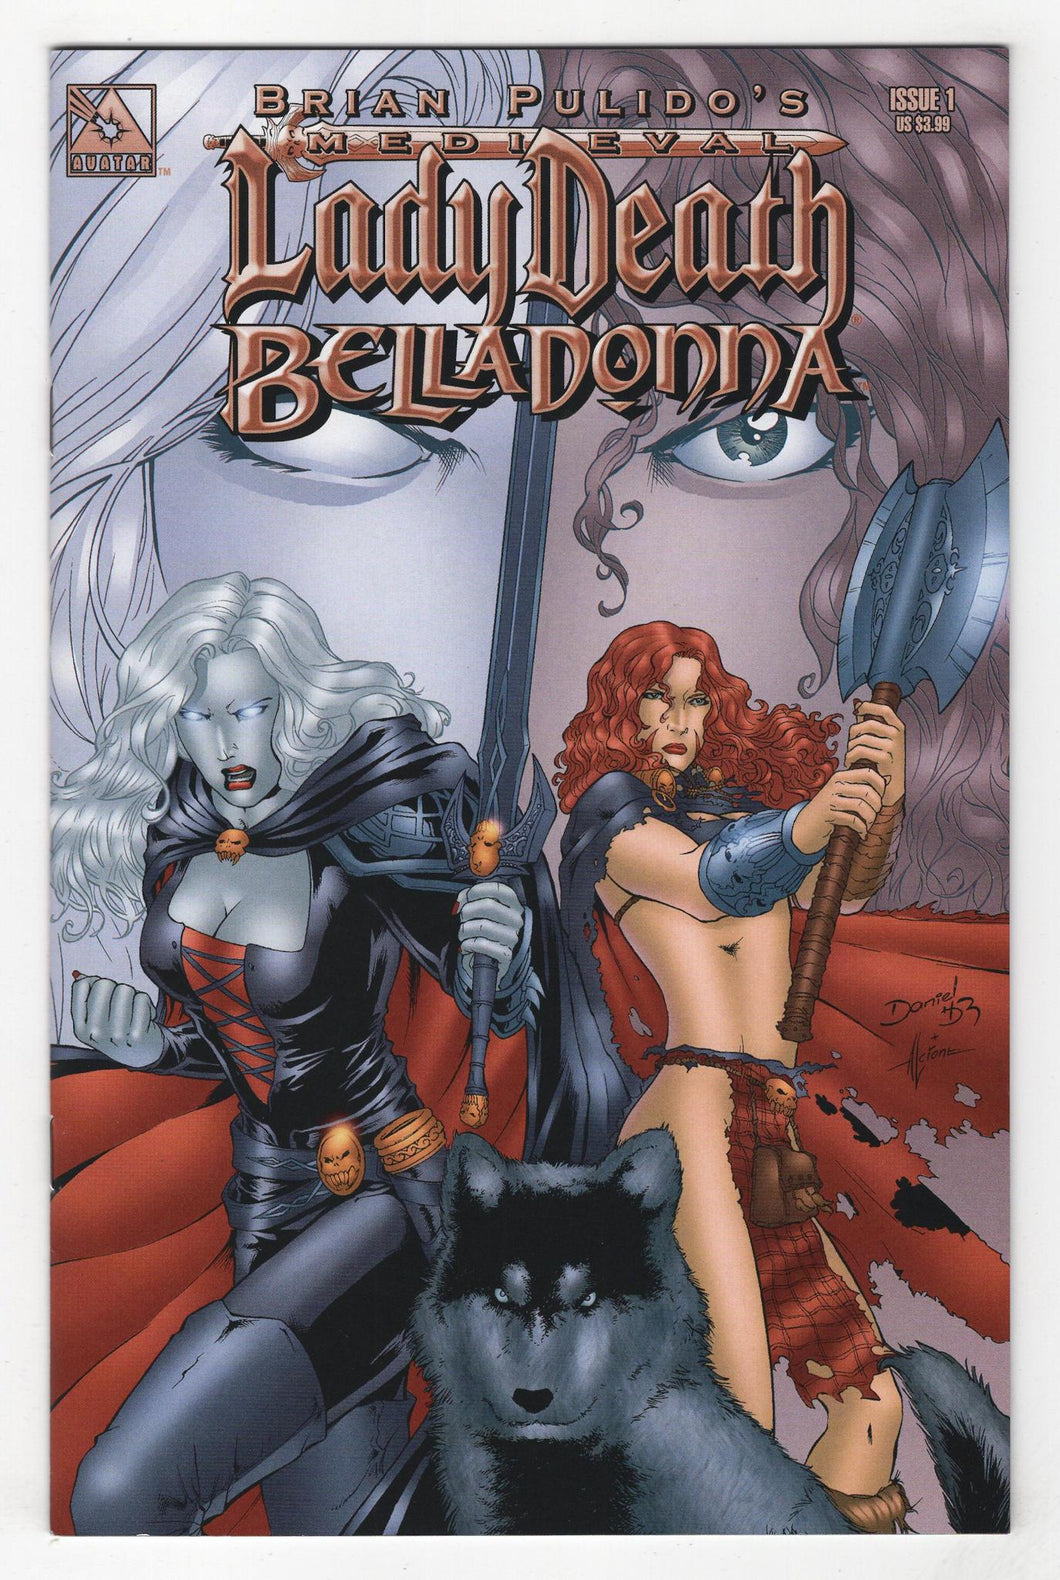 Medieval Lady Death Belladonna #1 Cover Front